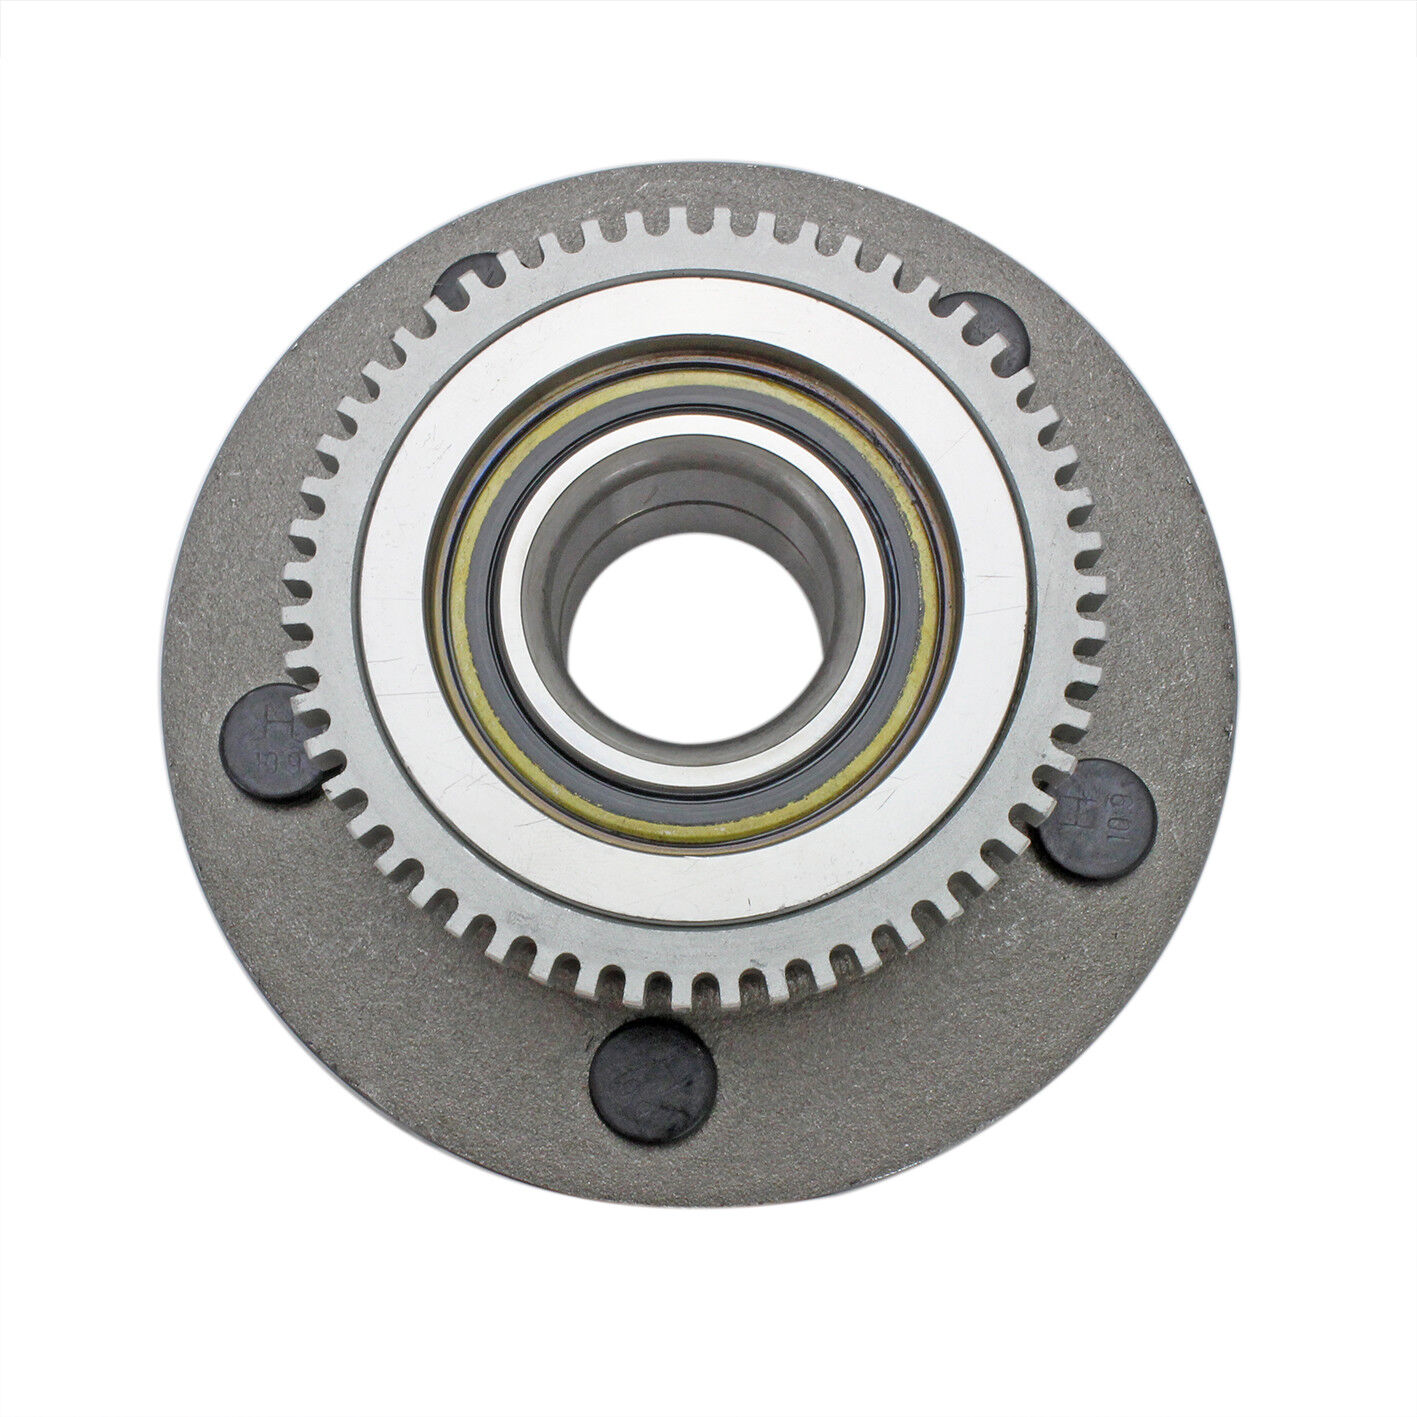 Car & Truck Parts Automotive Front Wheel Hub & Bearing Assembly for 2000-2001 Dodge Ram 1500 RWD with ABS